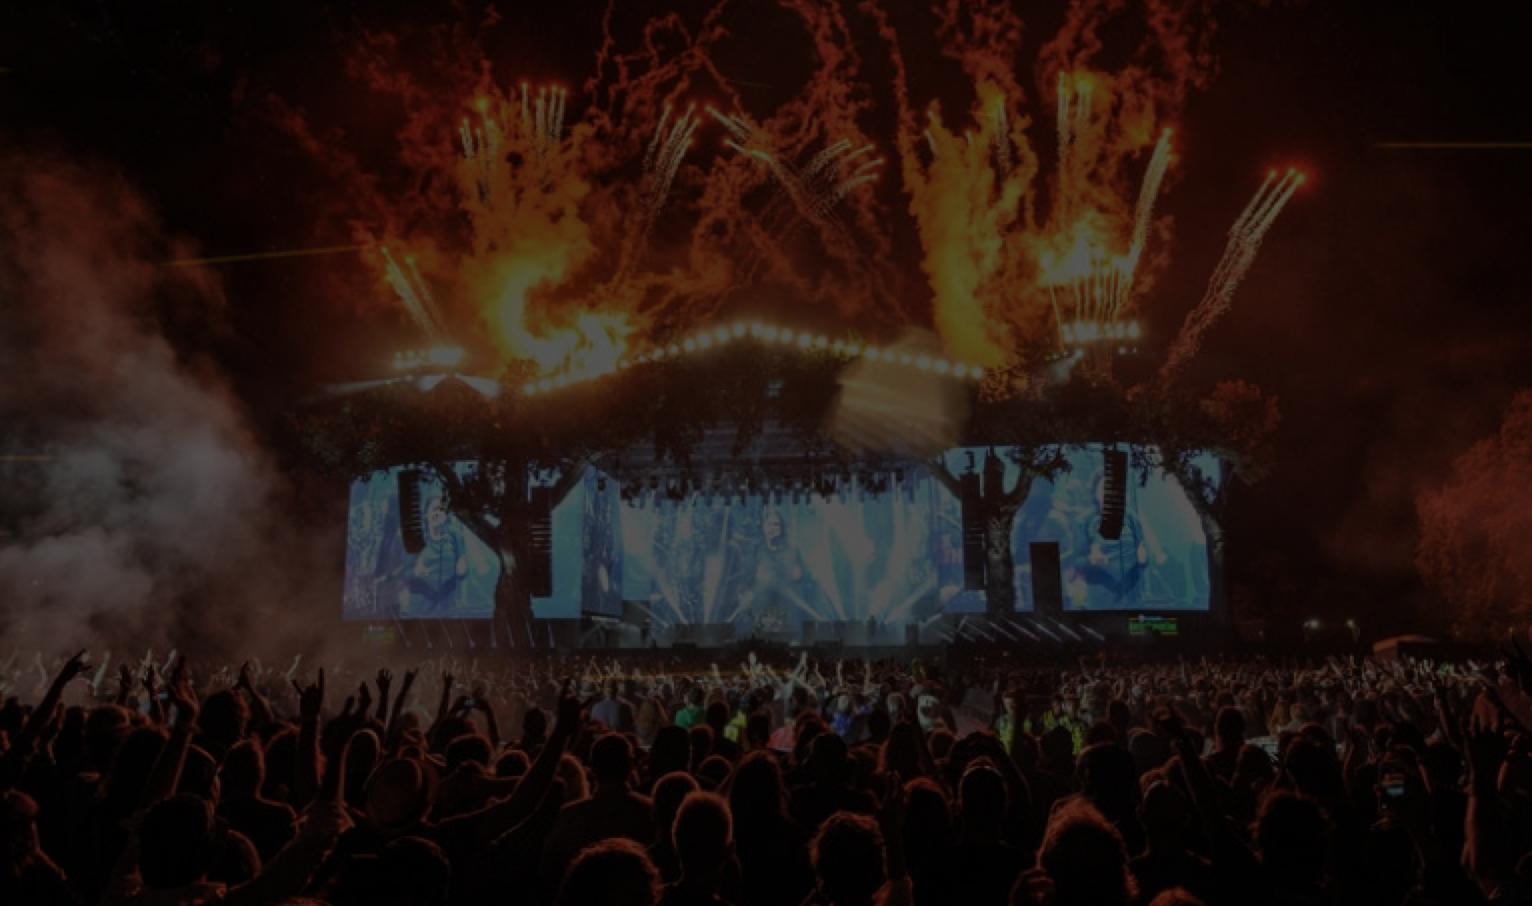 Festival / Live Event Merch Management - Building merch lines, full production capability, tracking sales and stock levels with state of the art POS systems on site, artist advances/settlements, and easy to read reporting.